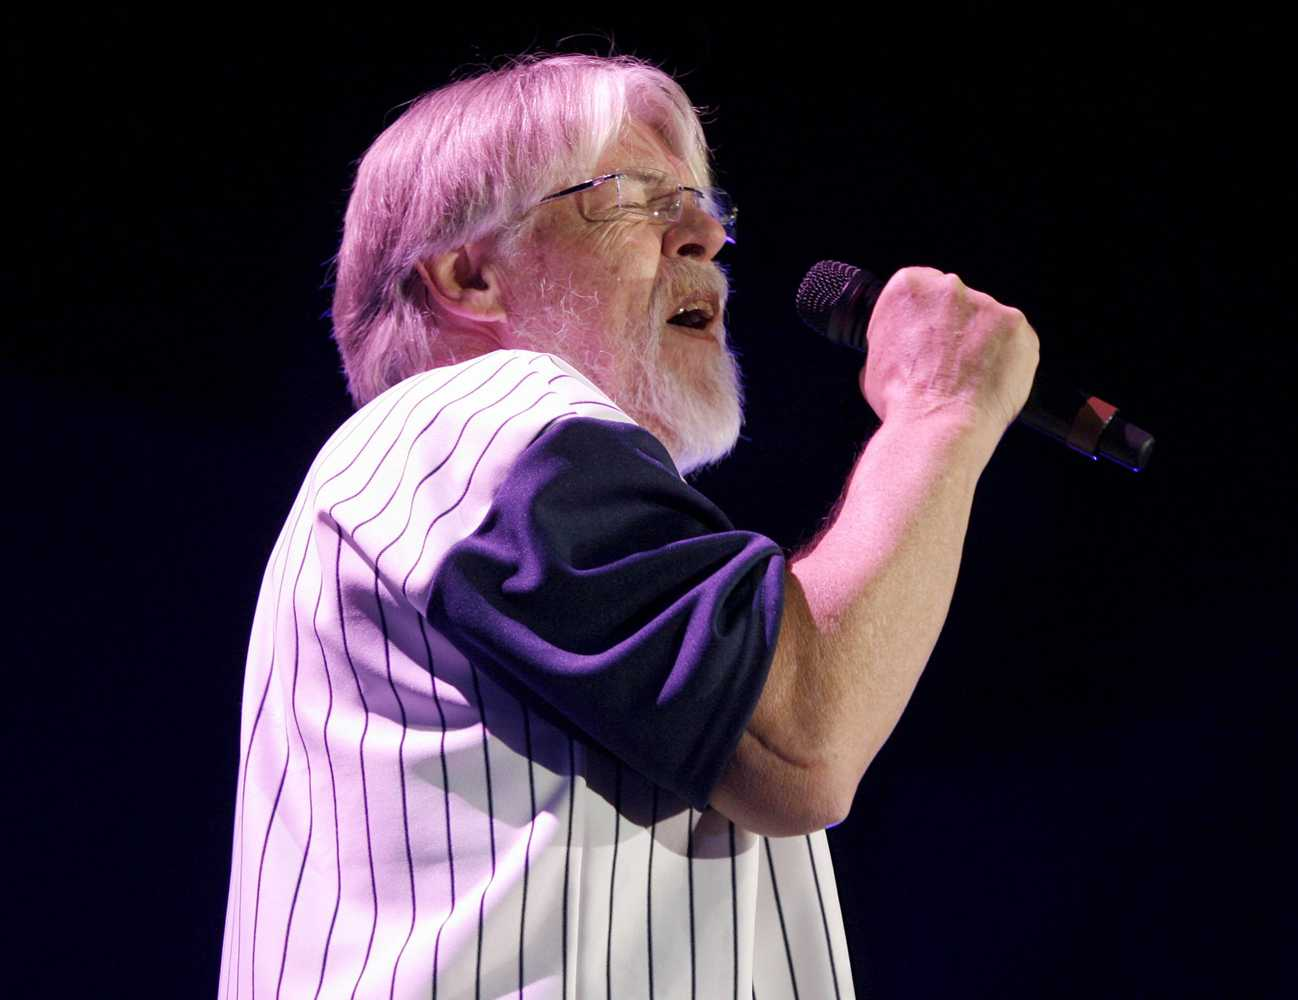 Rock music legend Bob Seger performs at the Huntington Center in Toledo, Ohio in March 2011. (Madalyn Ruggiero/Detroit Free Press/MCT)